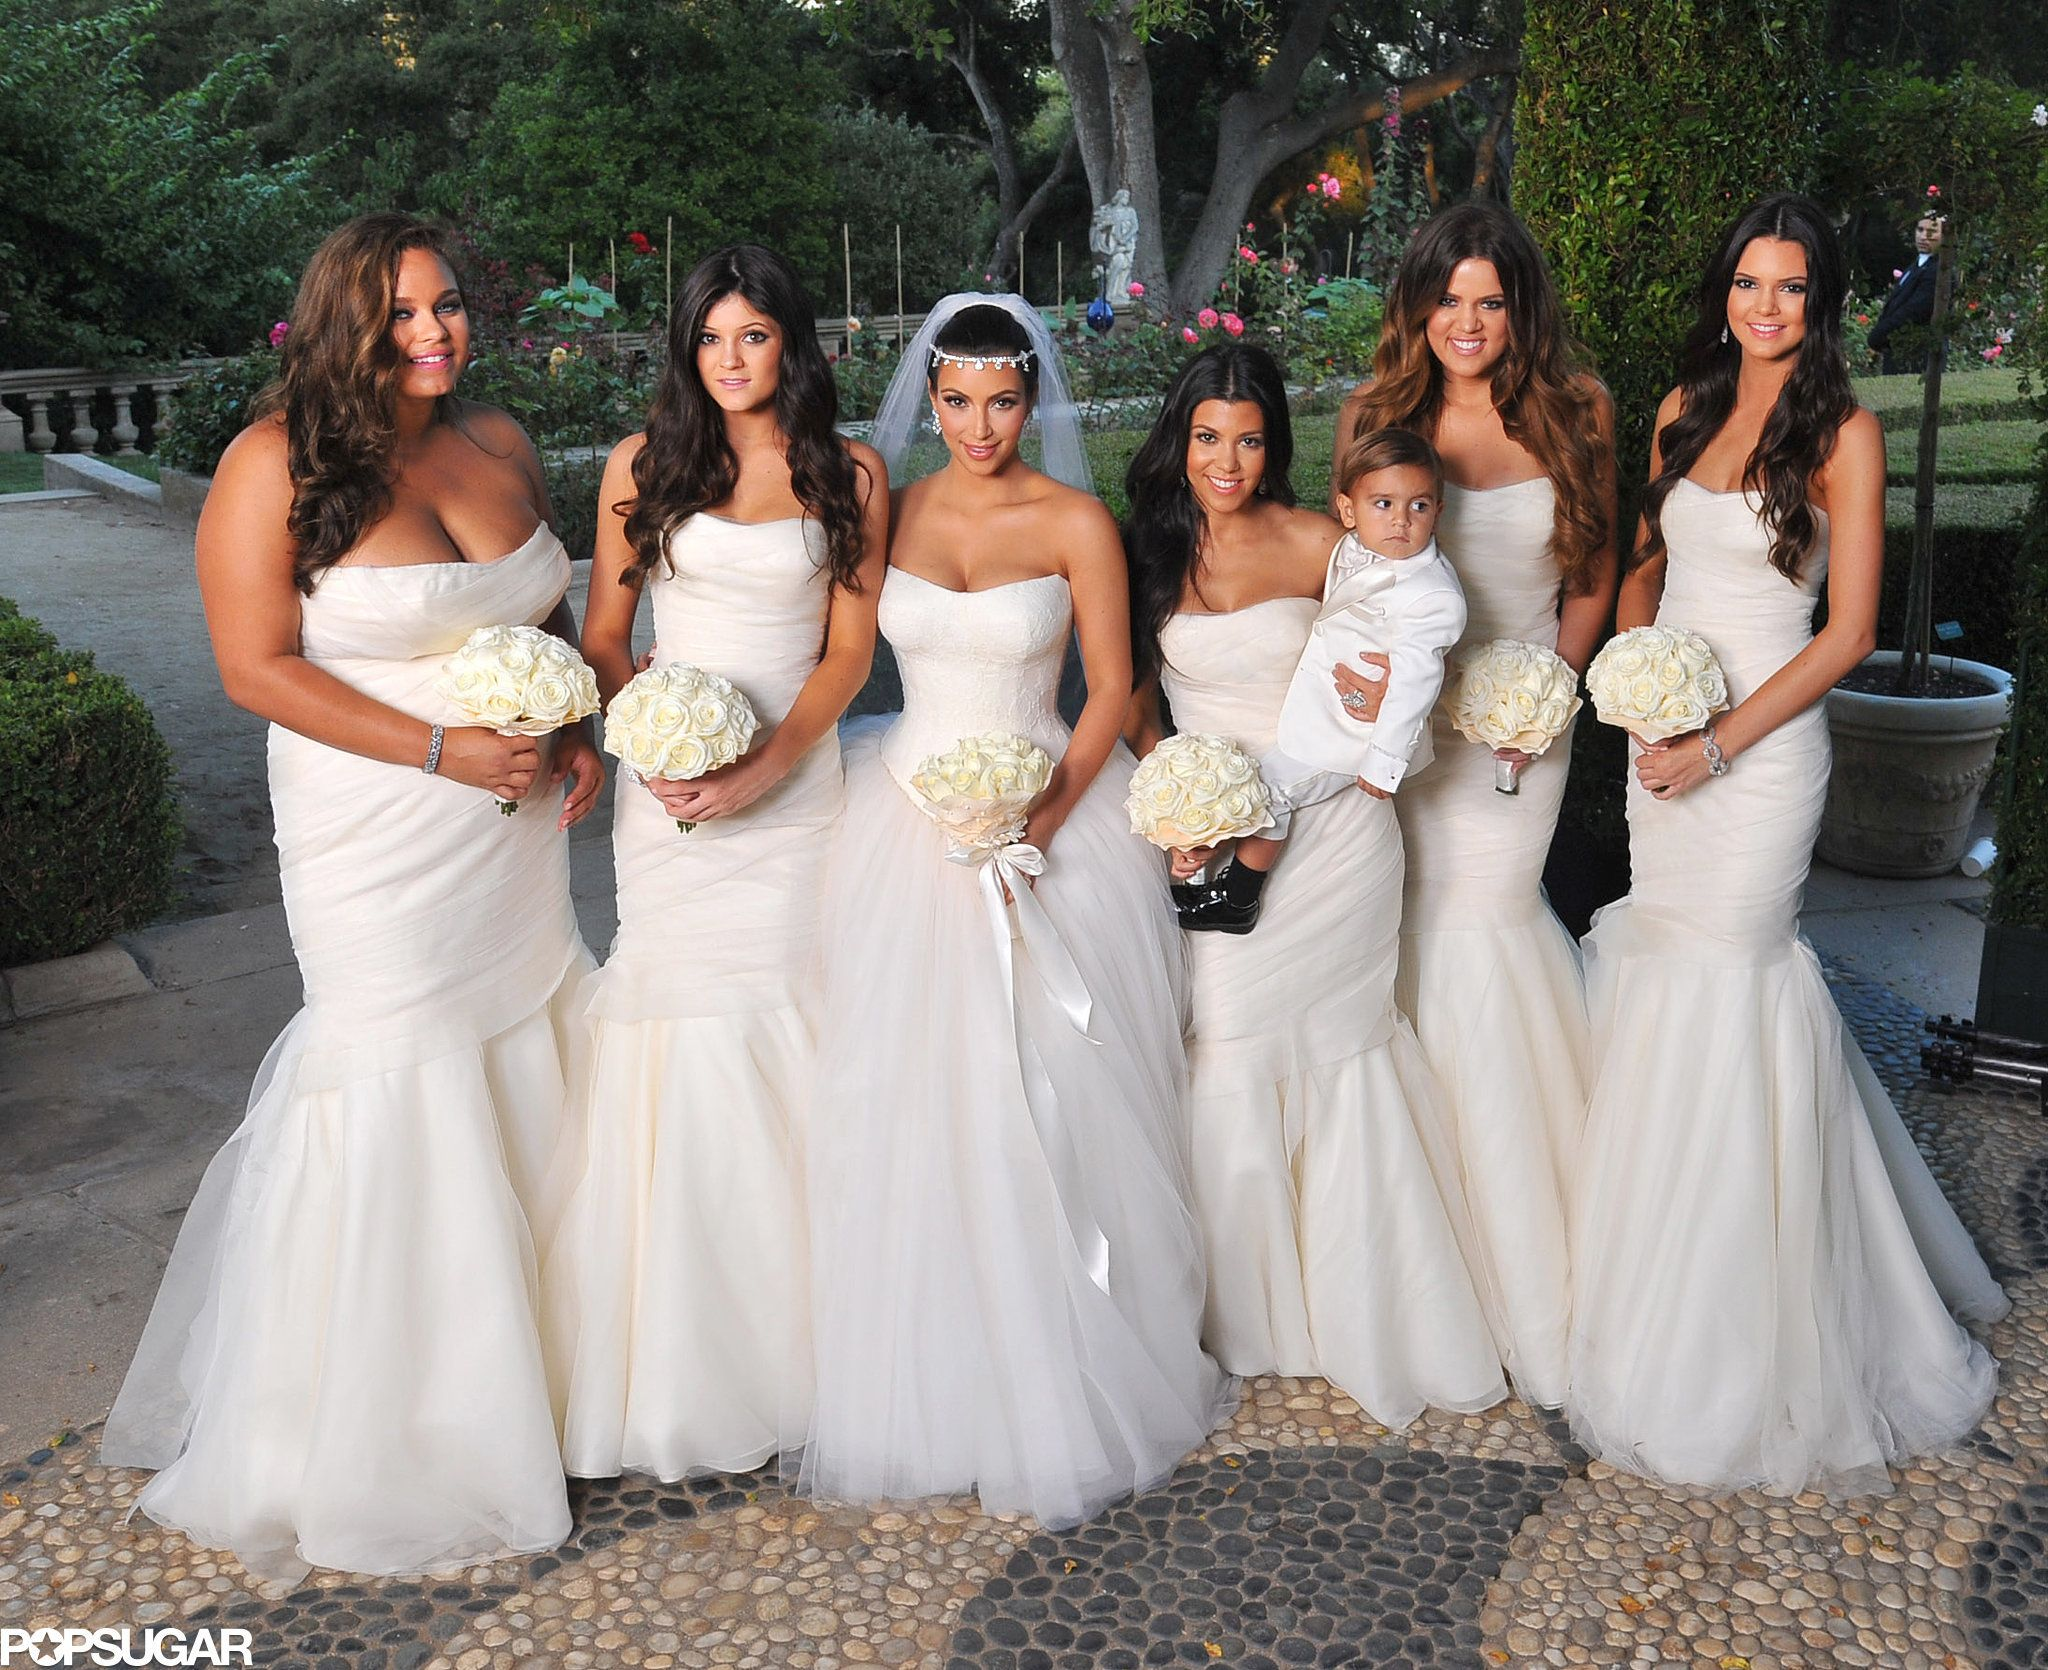 Kim Posed With Her Bridesmaids Sisters Khloe And Kourtney